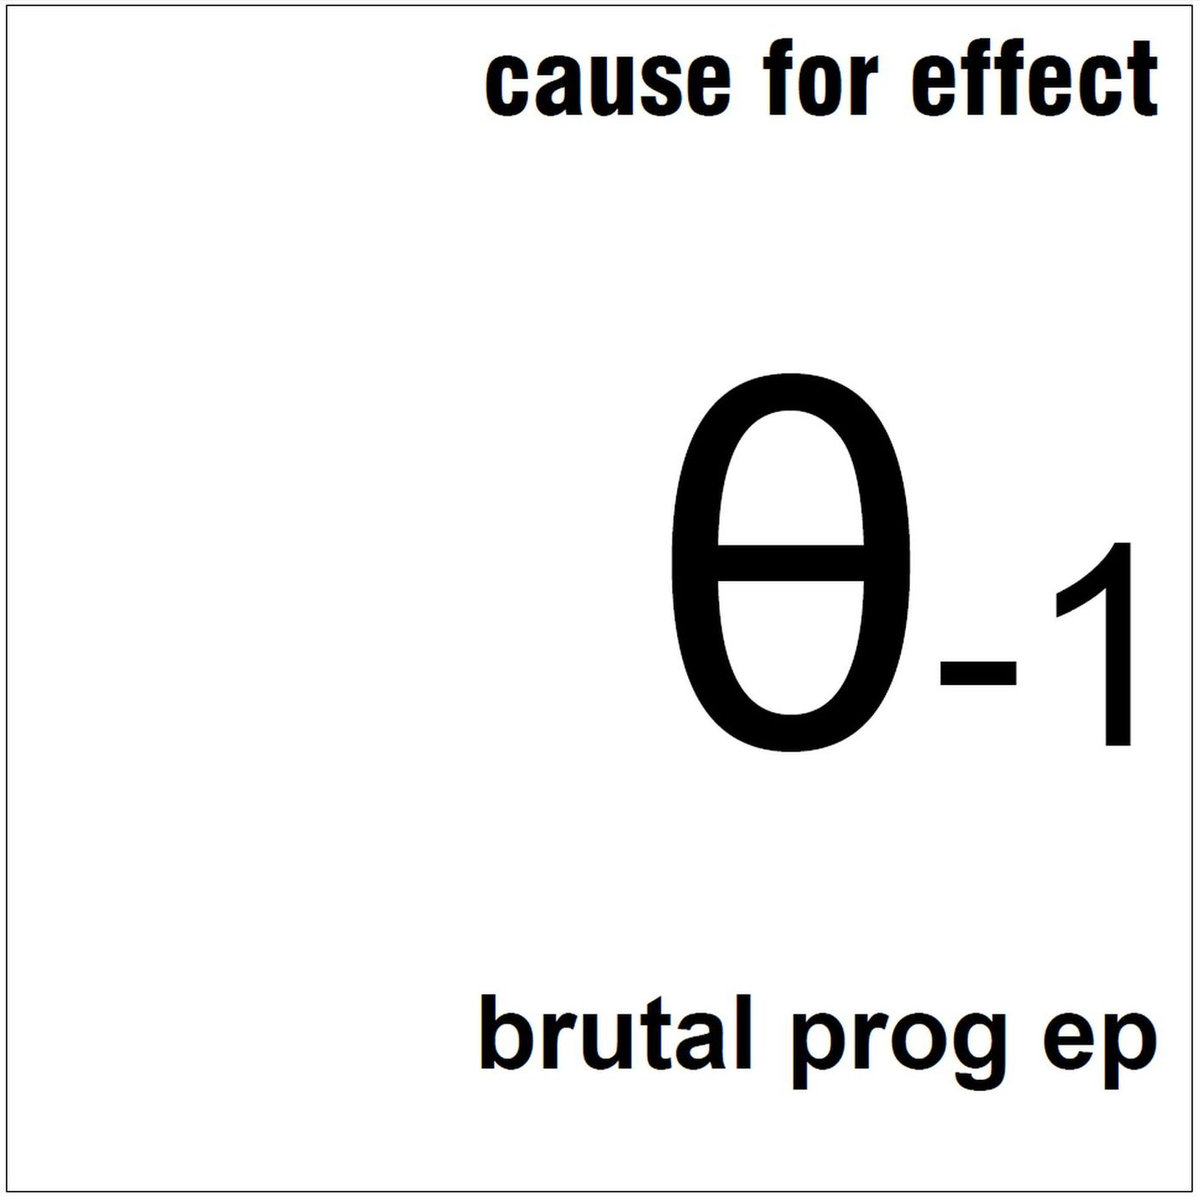 Cause For Effect Brutal Prog.jpg